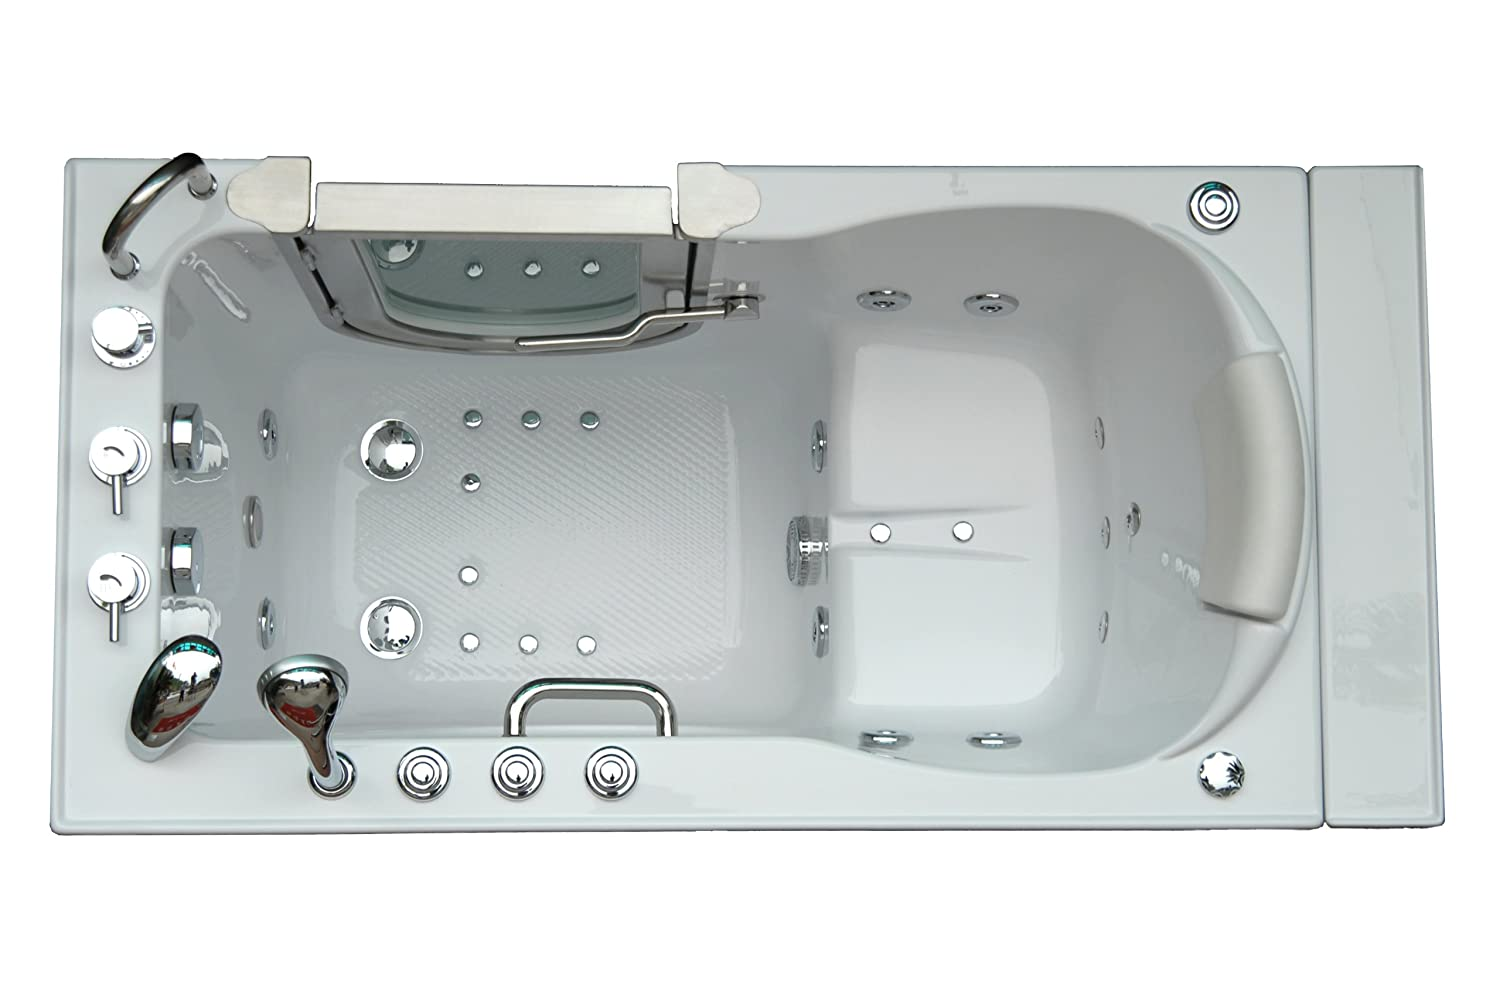 Amazon.com: Deluxe Dual Massage Acrylic Walk In Bathtub -ETL ...